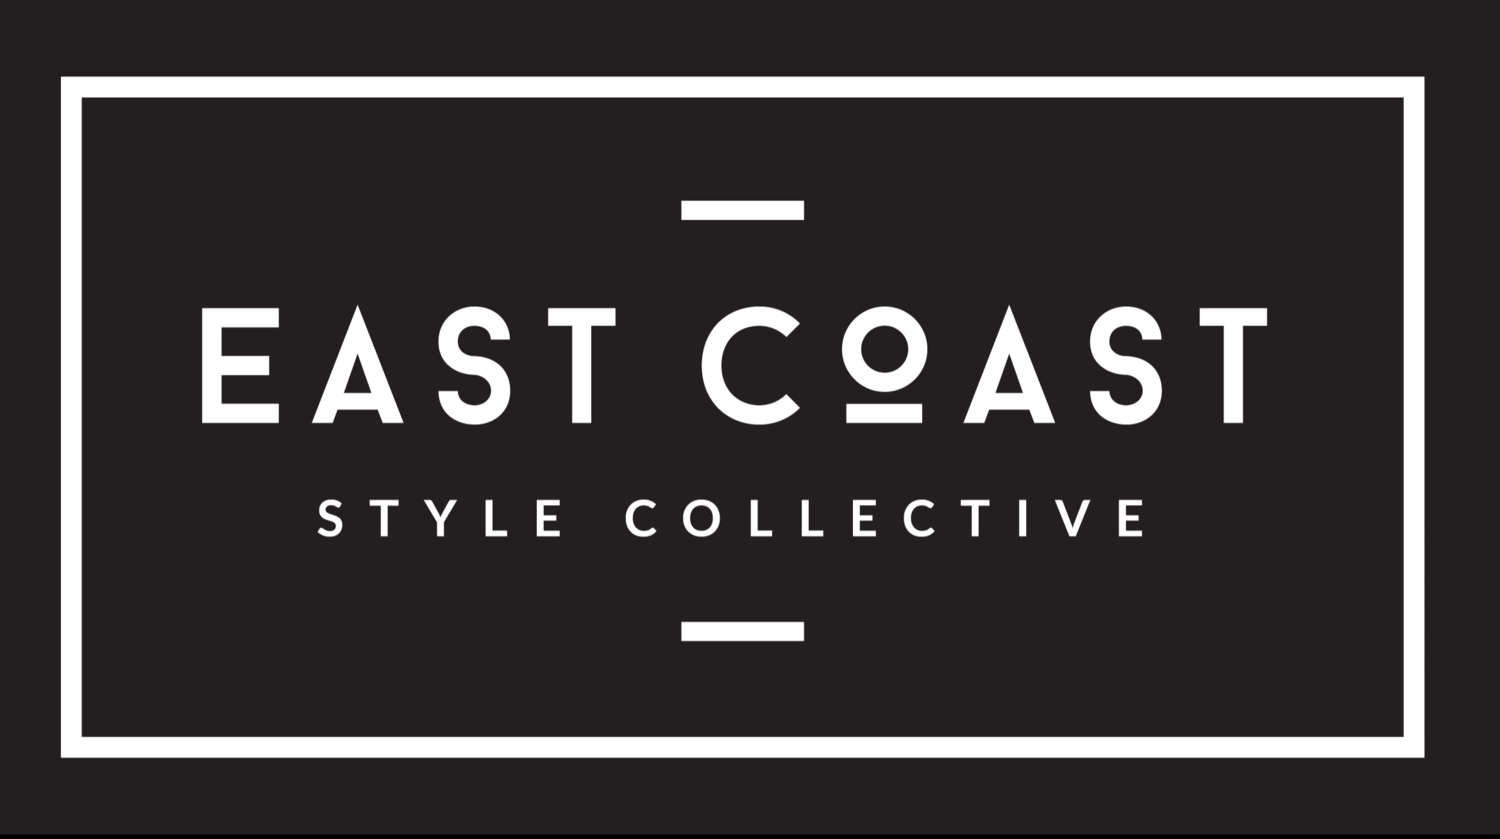 East Coast Style Collective